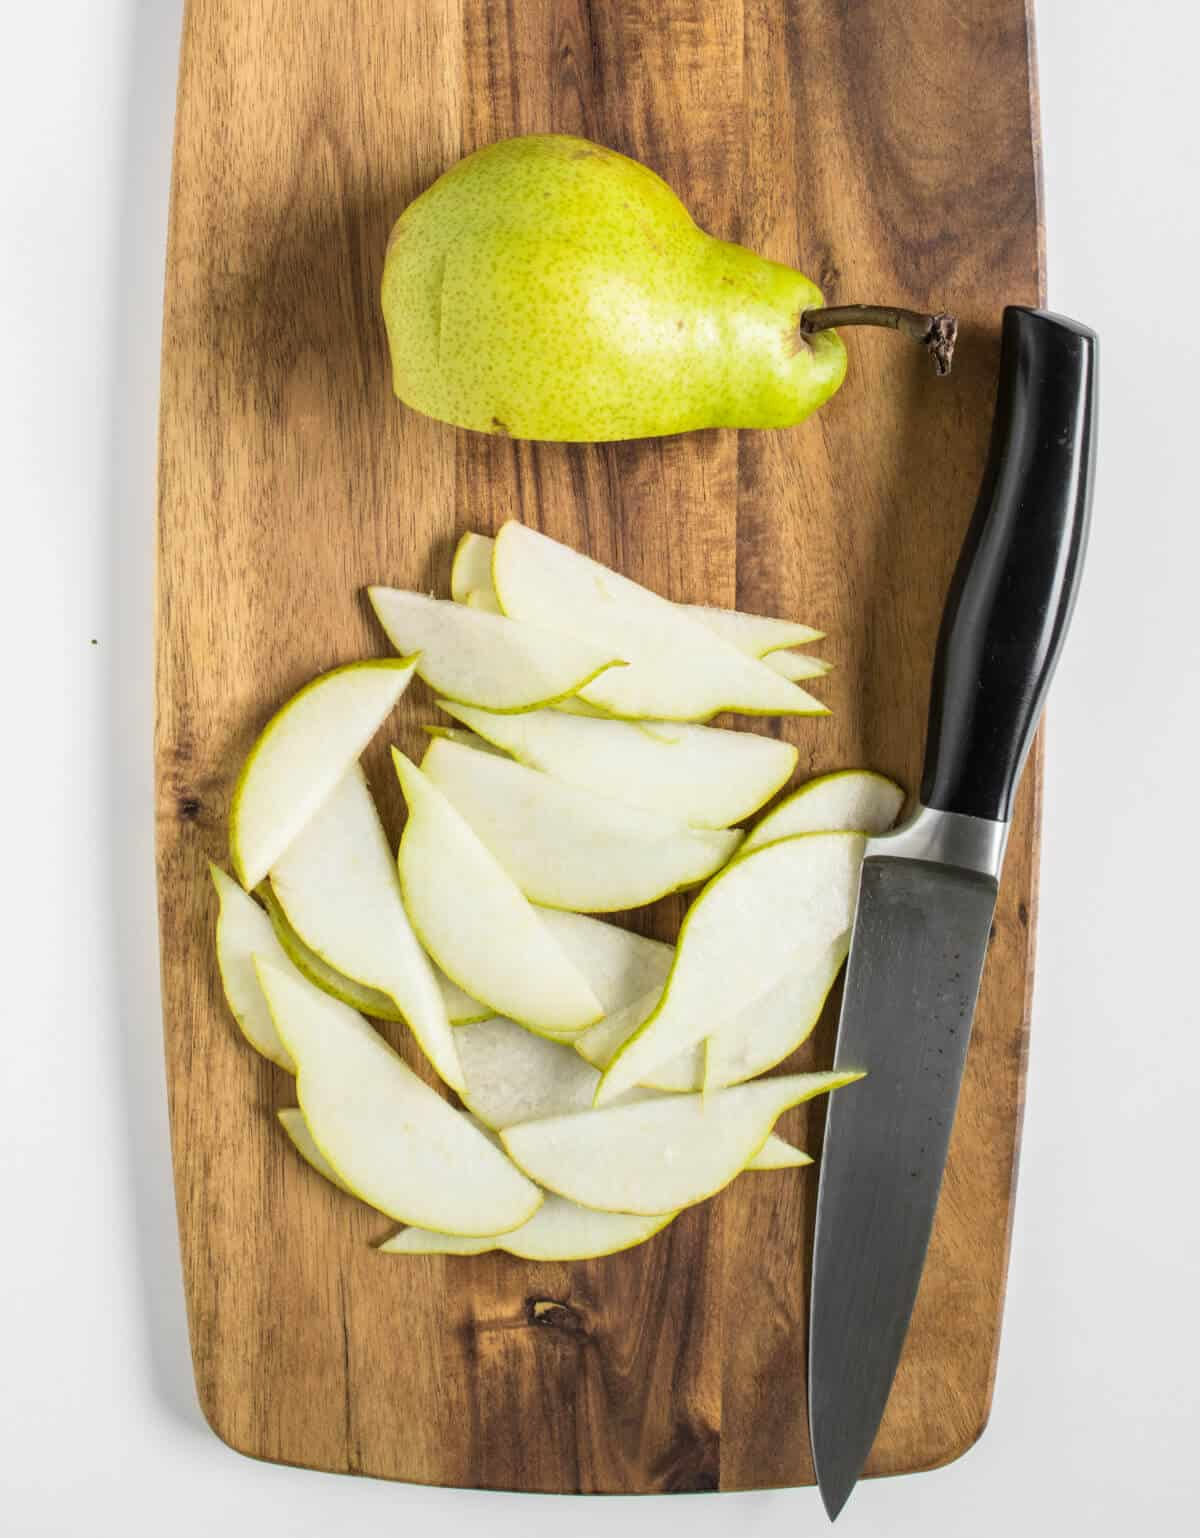 Pear being sliced thinly on a chopping board